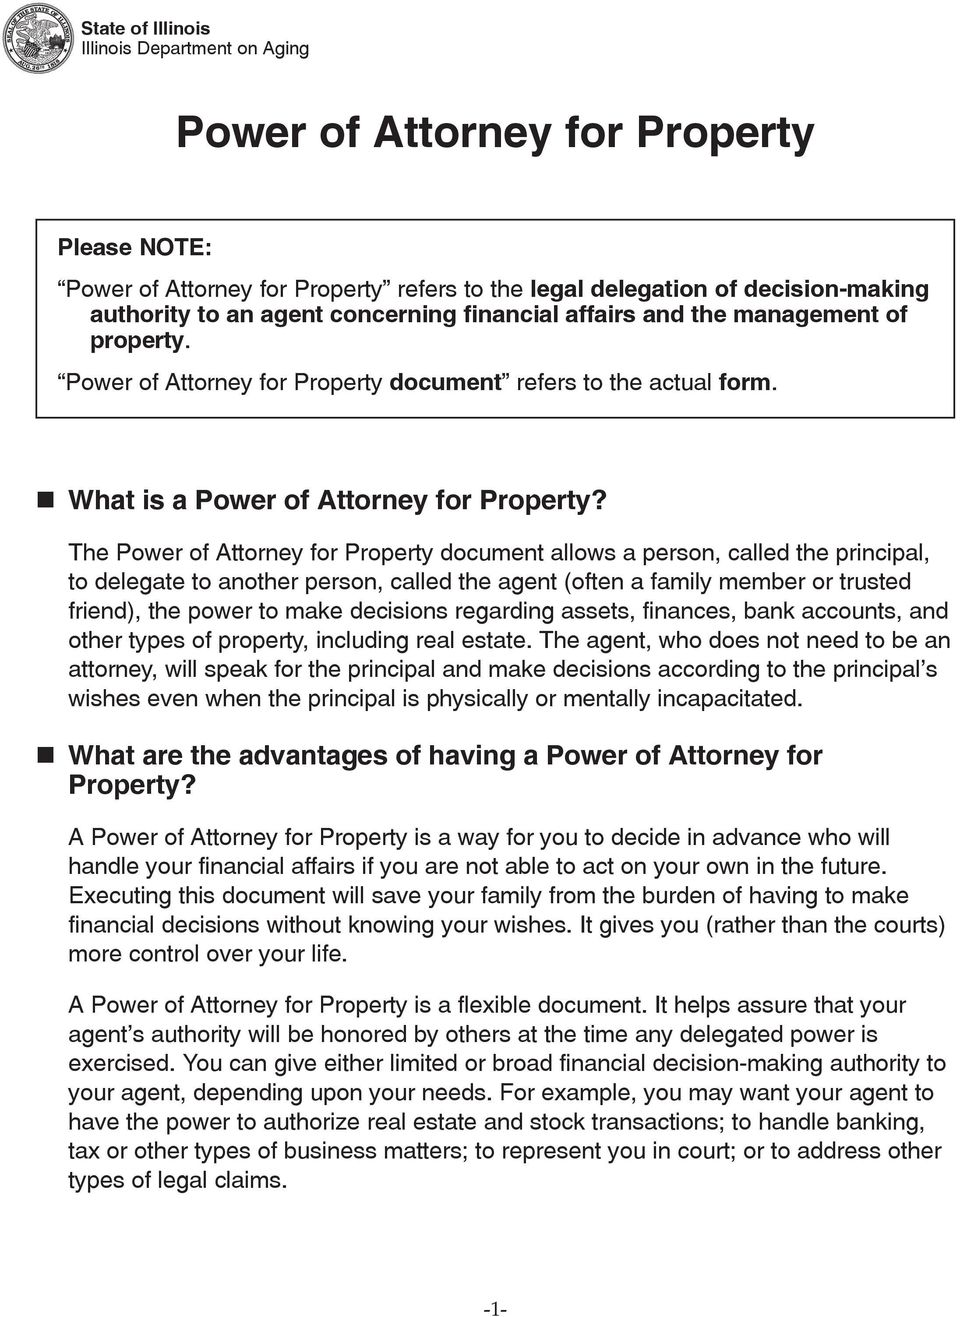 The Power of Attorney for Property document allows a person, called the principal, to delegate to another person, called the agent (often a family member or trusted friend), the power to make